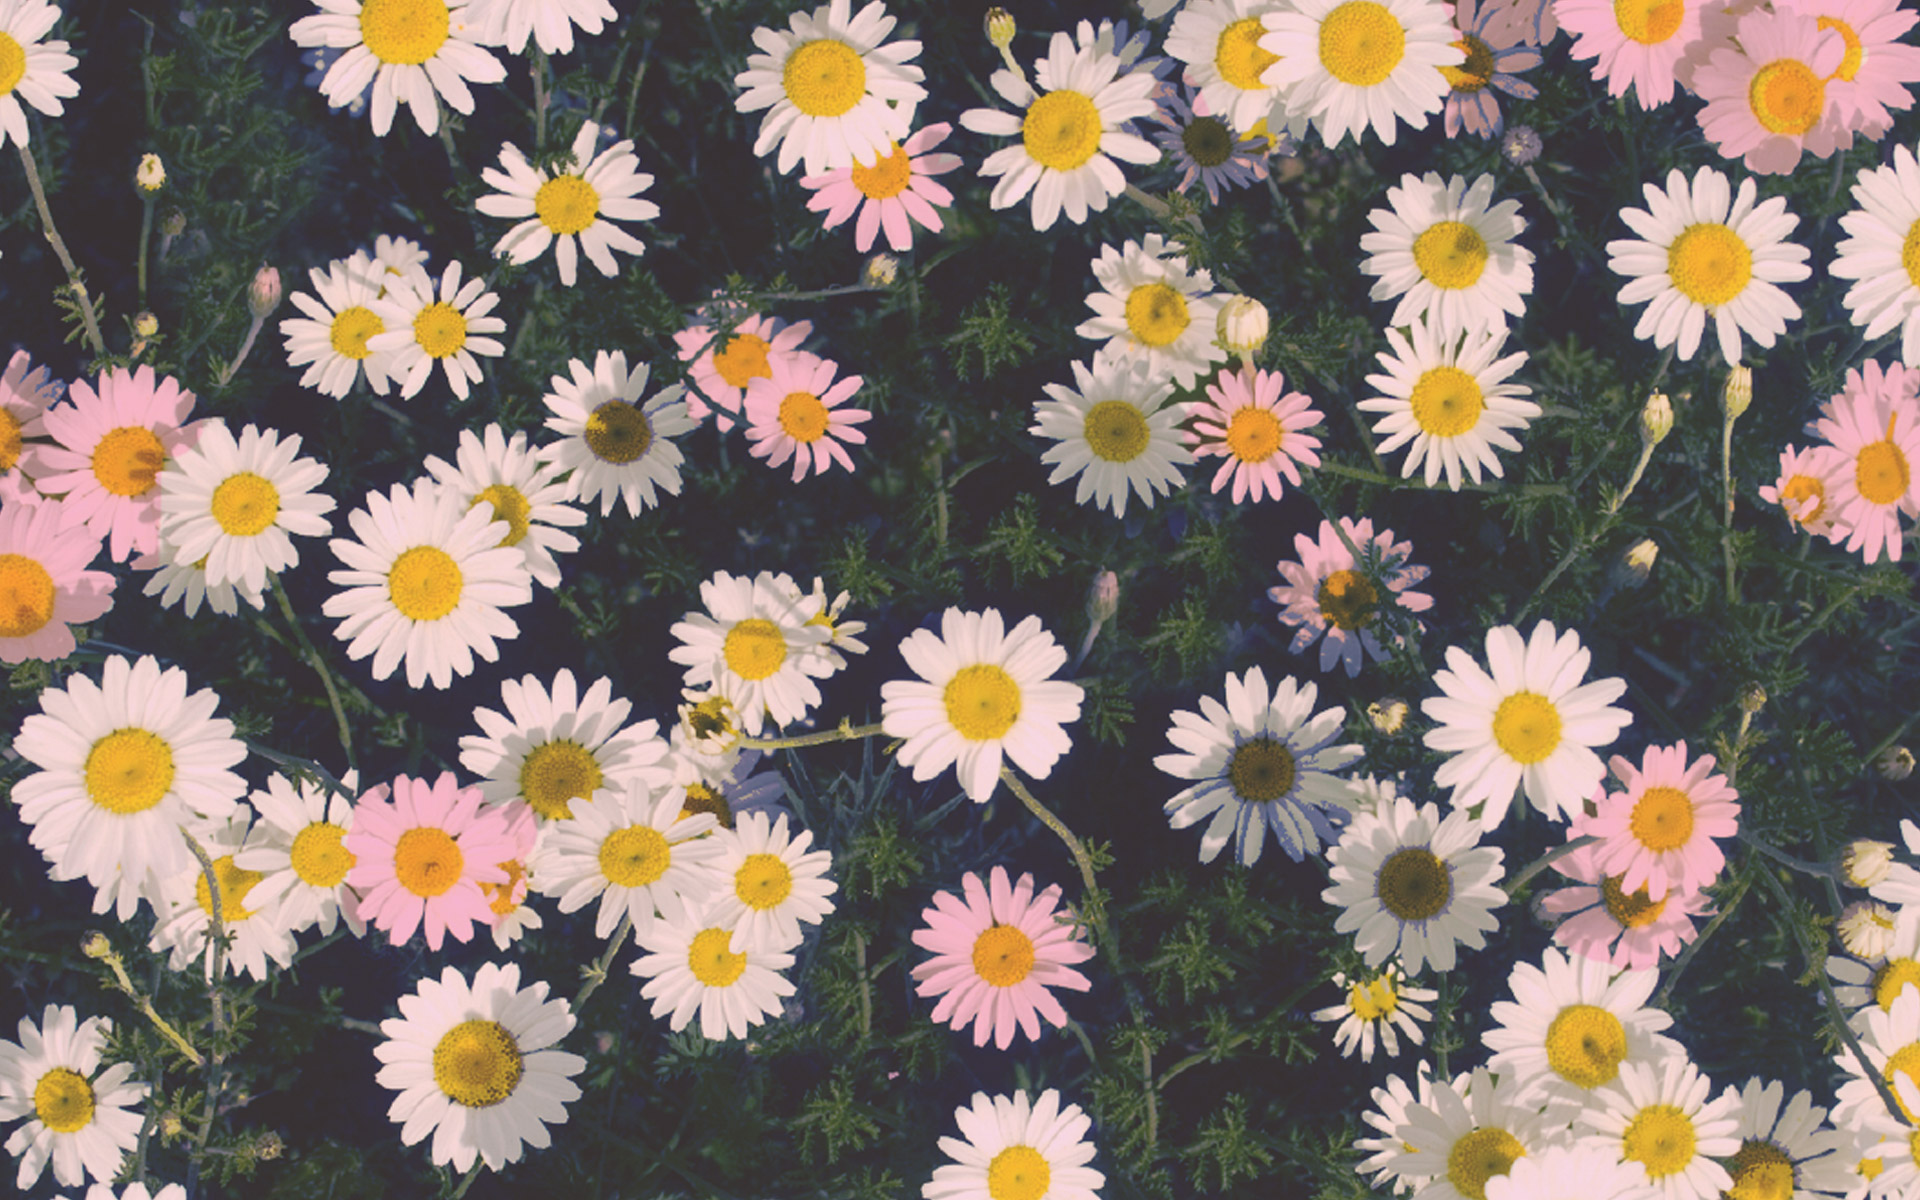 Daisy Wallpaper Background